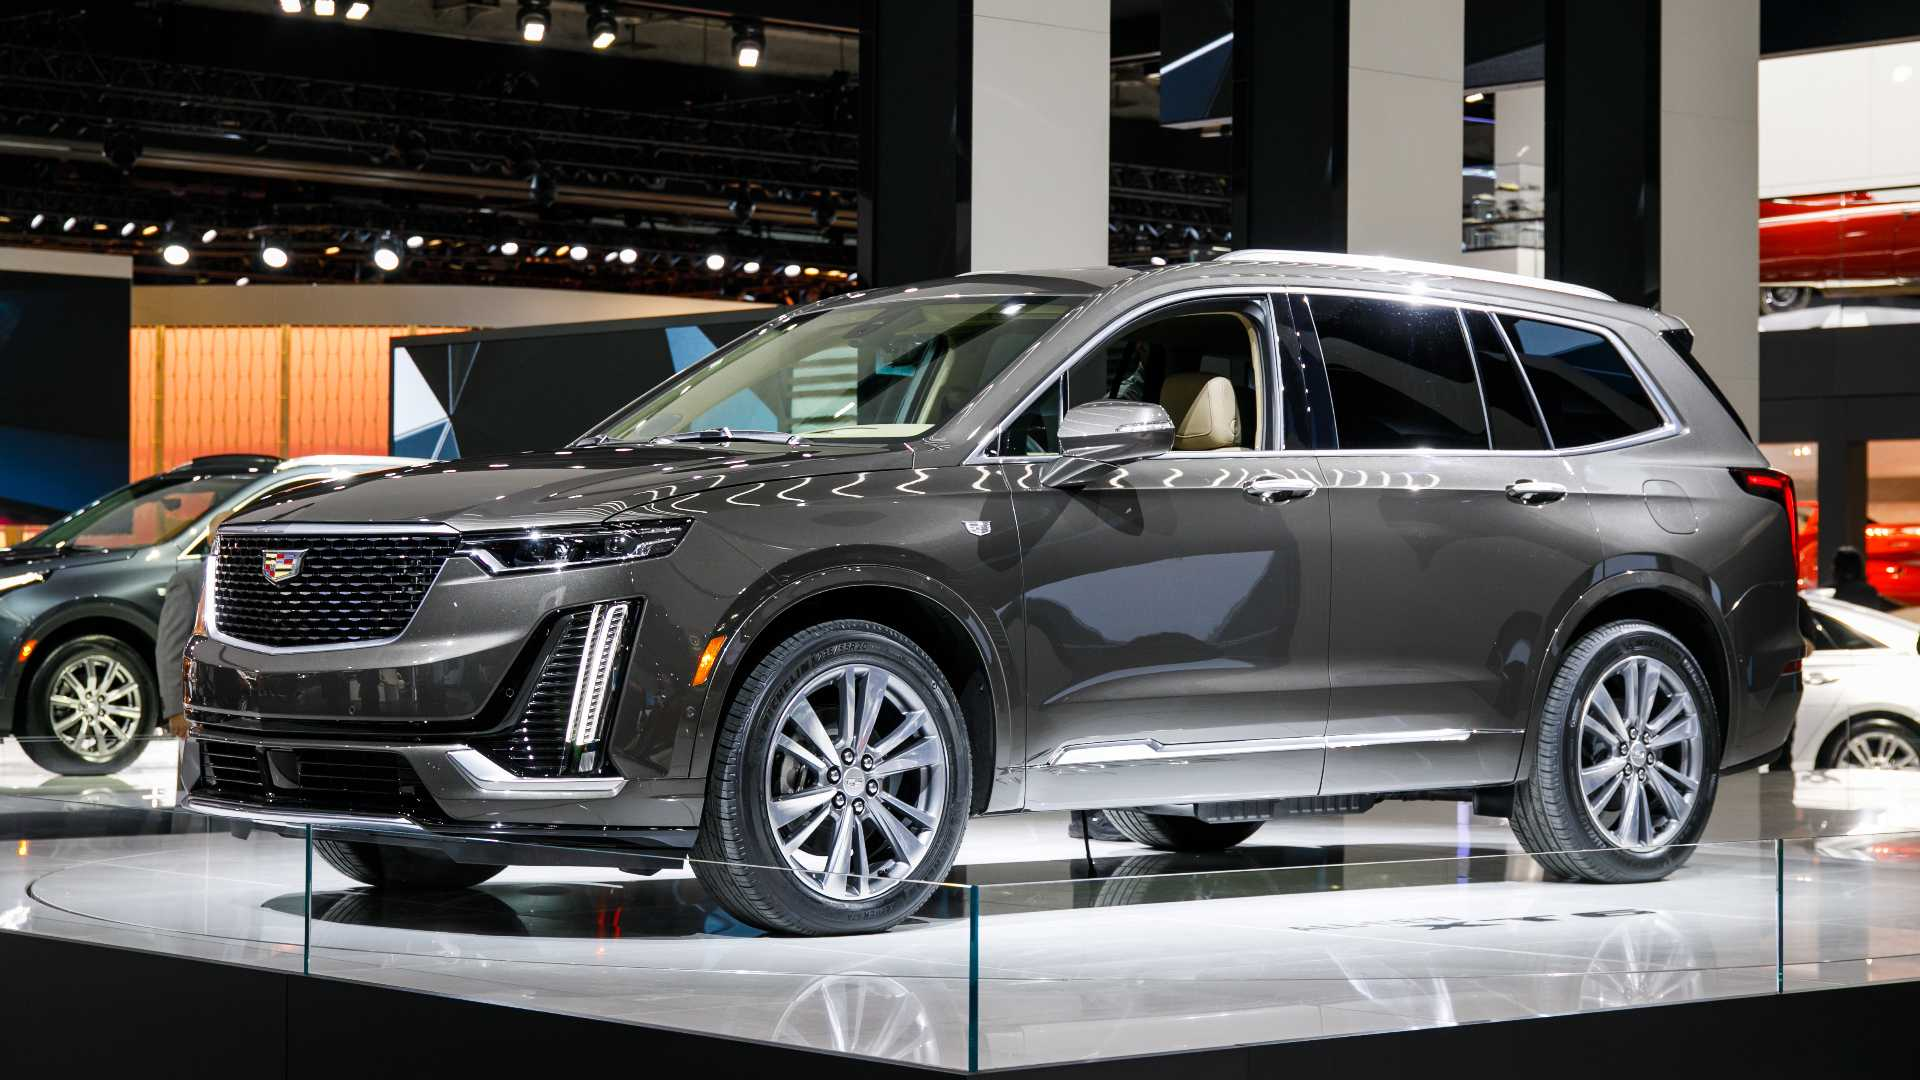 97 New 2020 Cadillac Xt6 Gas Mileage Release Date with 2020 Cadillac Xt6 Gas Mileage